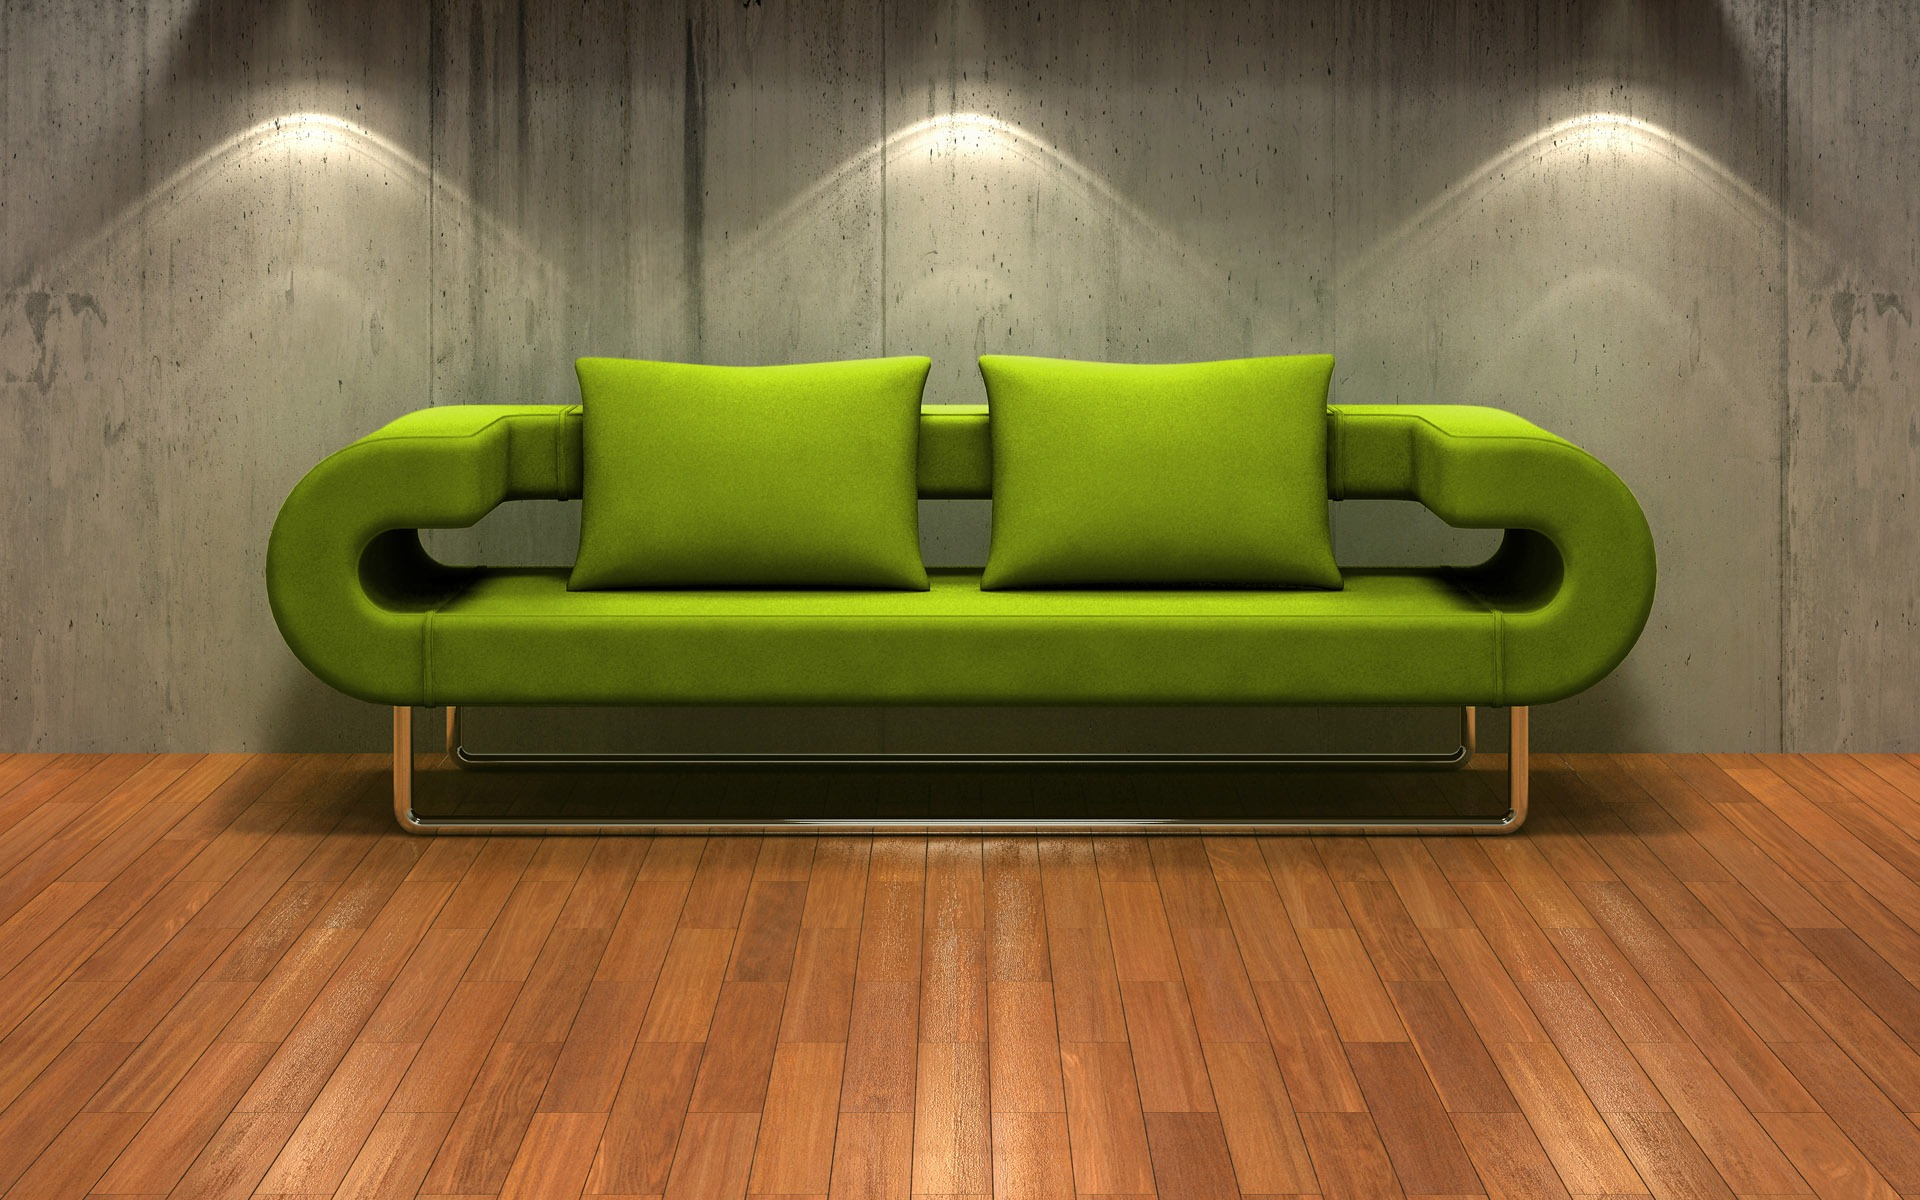 Incroyable 3D Couch Wallpaper Interior Design Other Wallpapers